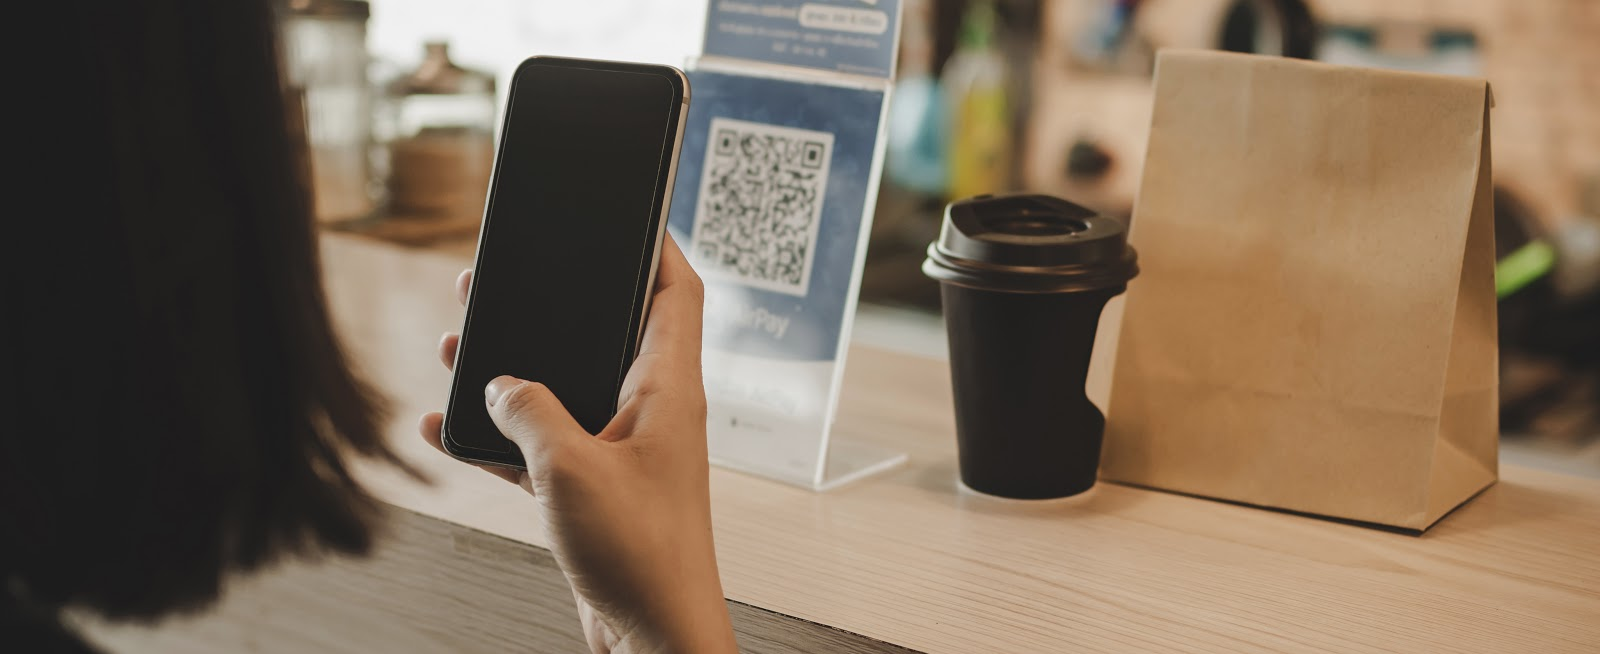 A woman scanning a qr code at the counter to pay for the take-away coffee and food